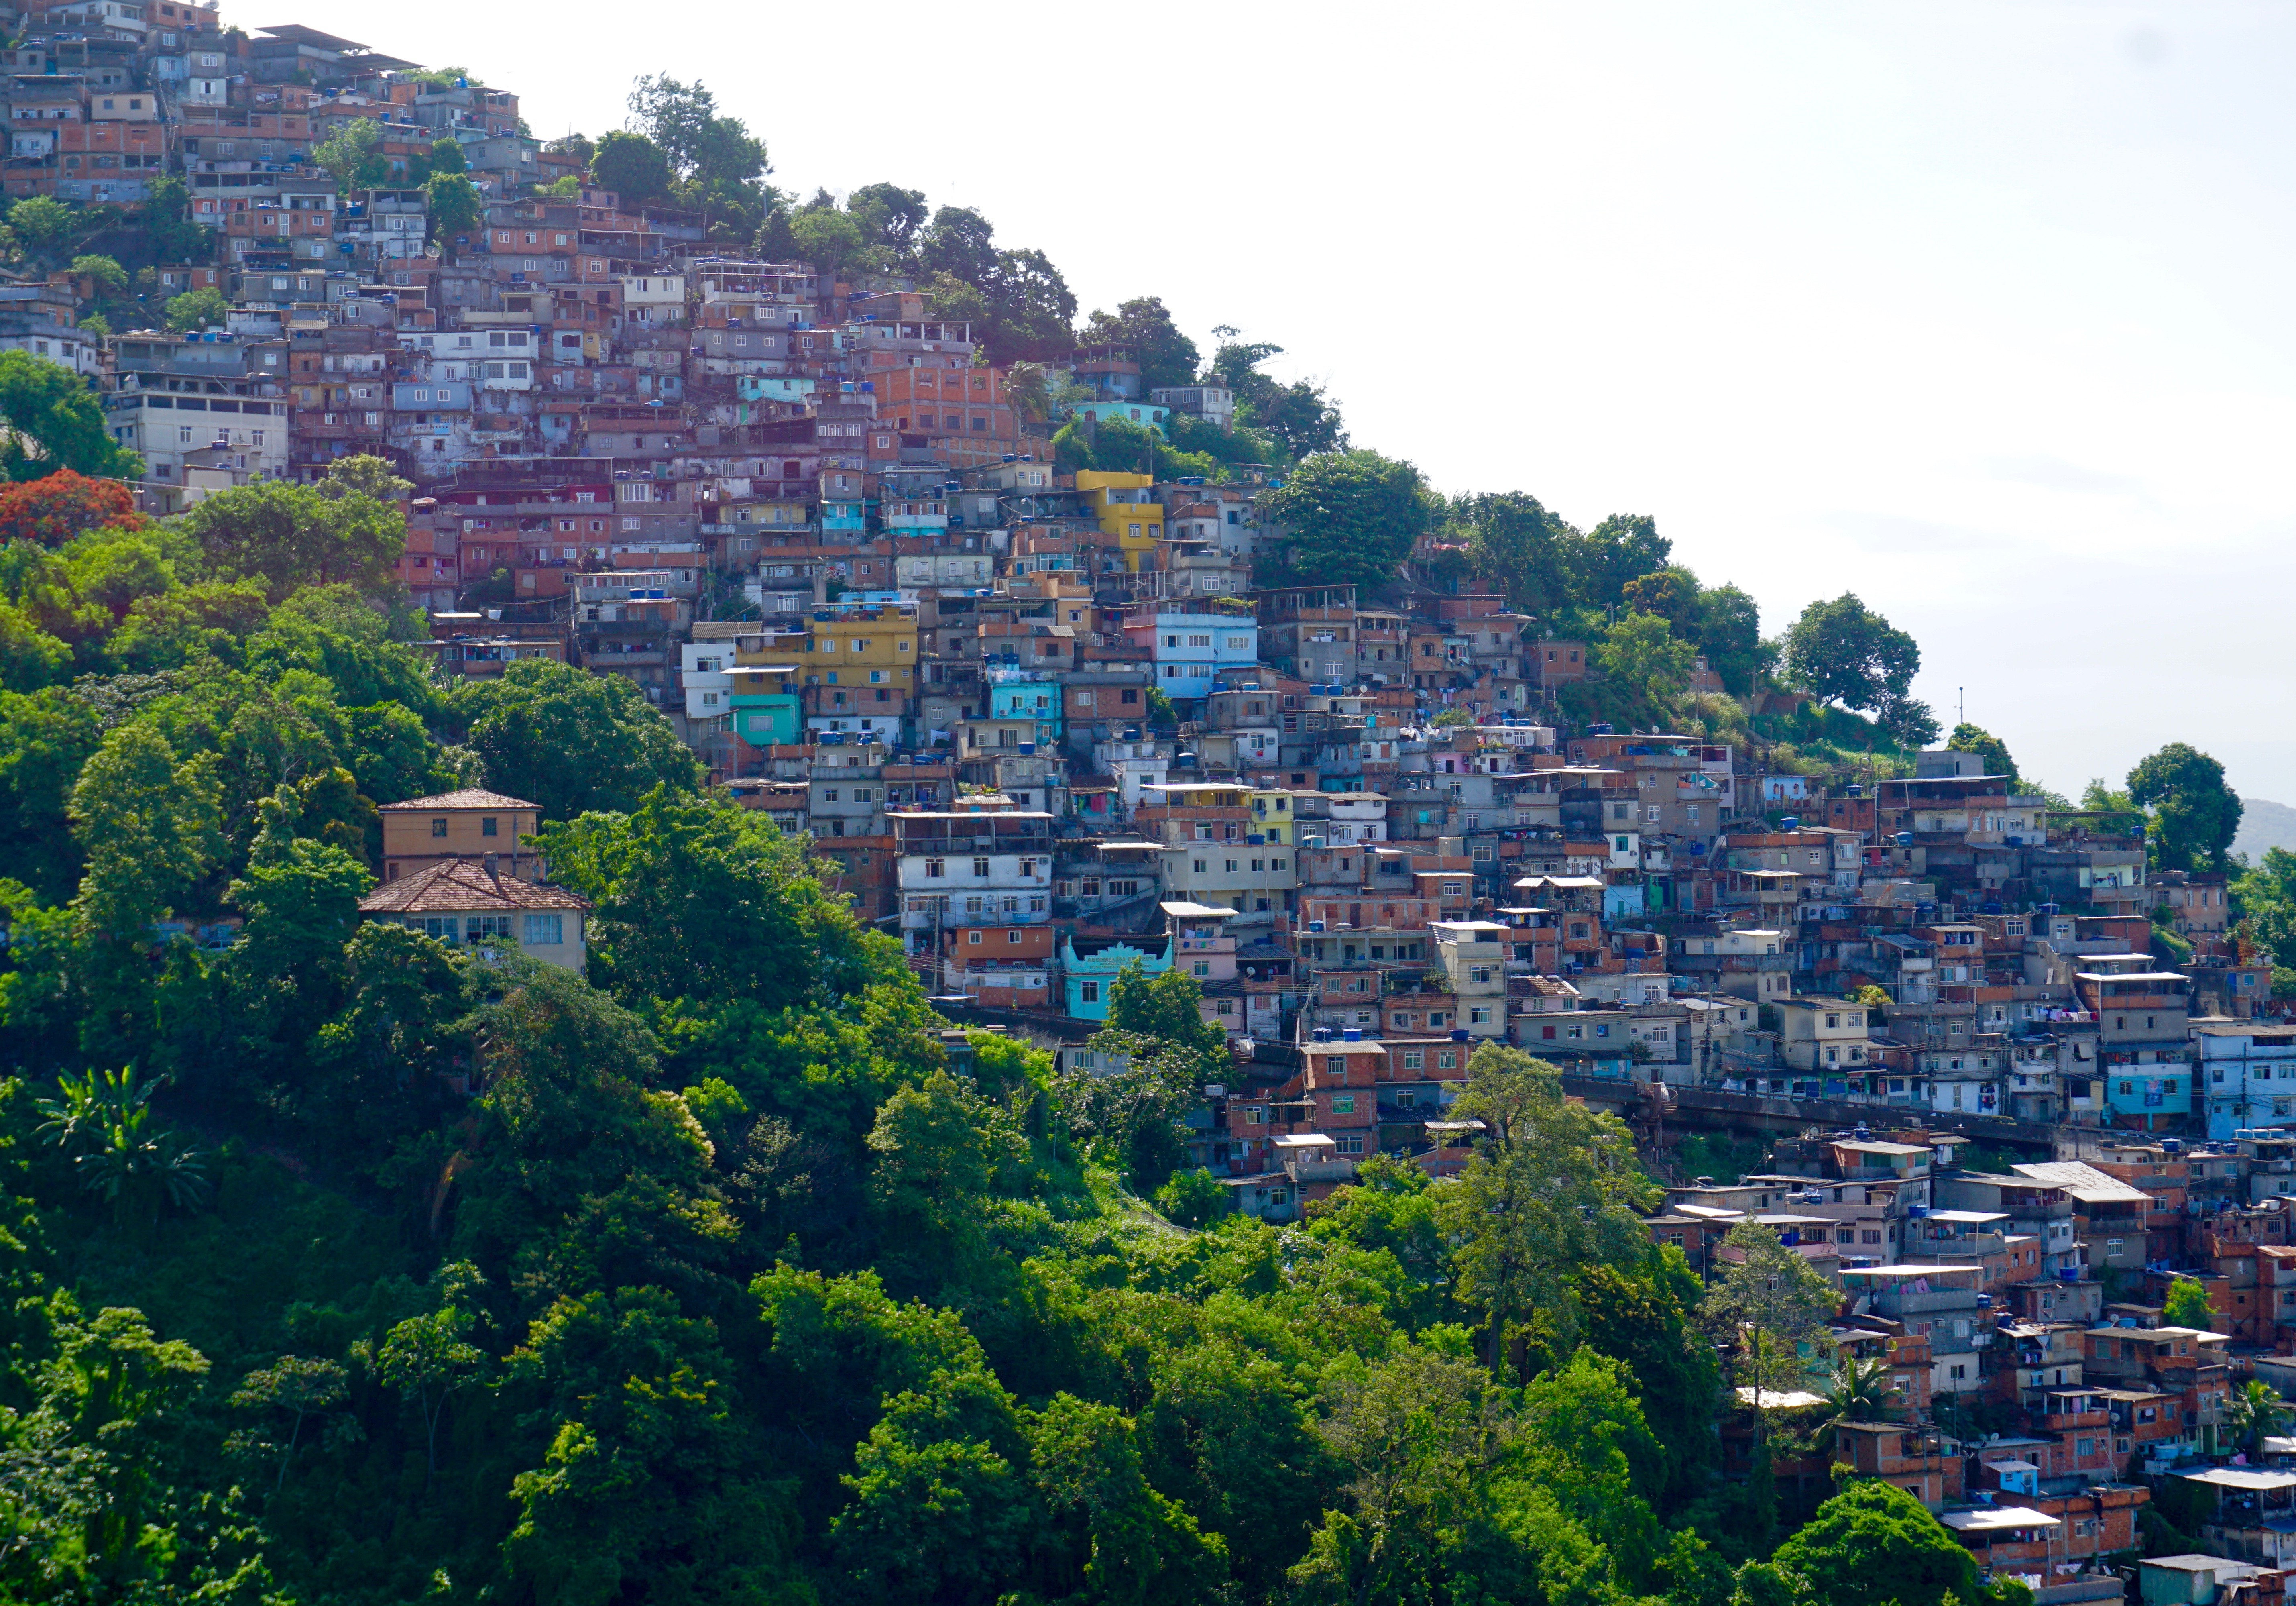 one of many favelas